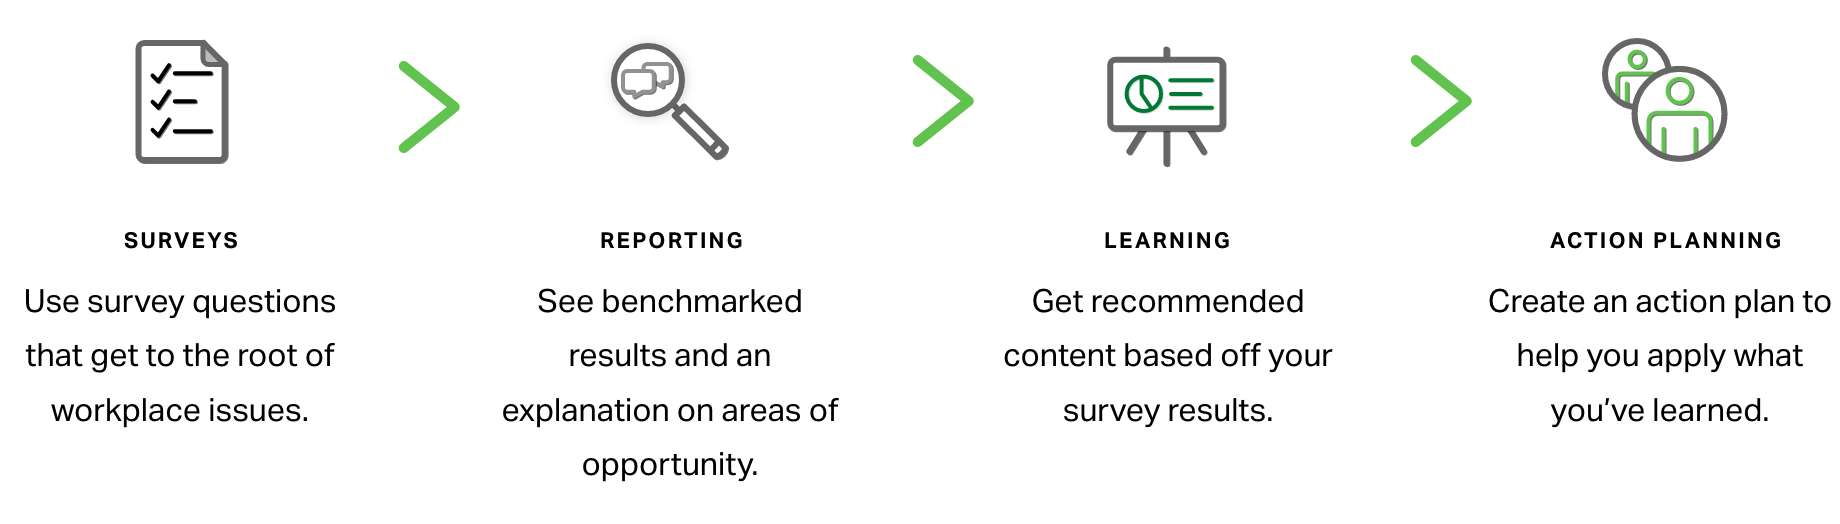 Find insights embedded throughout the survey, reporting and learning tools so you can apply what you learn on your action plan.